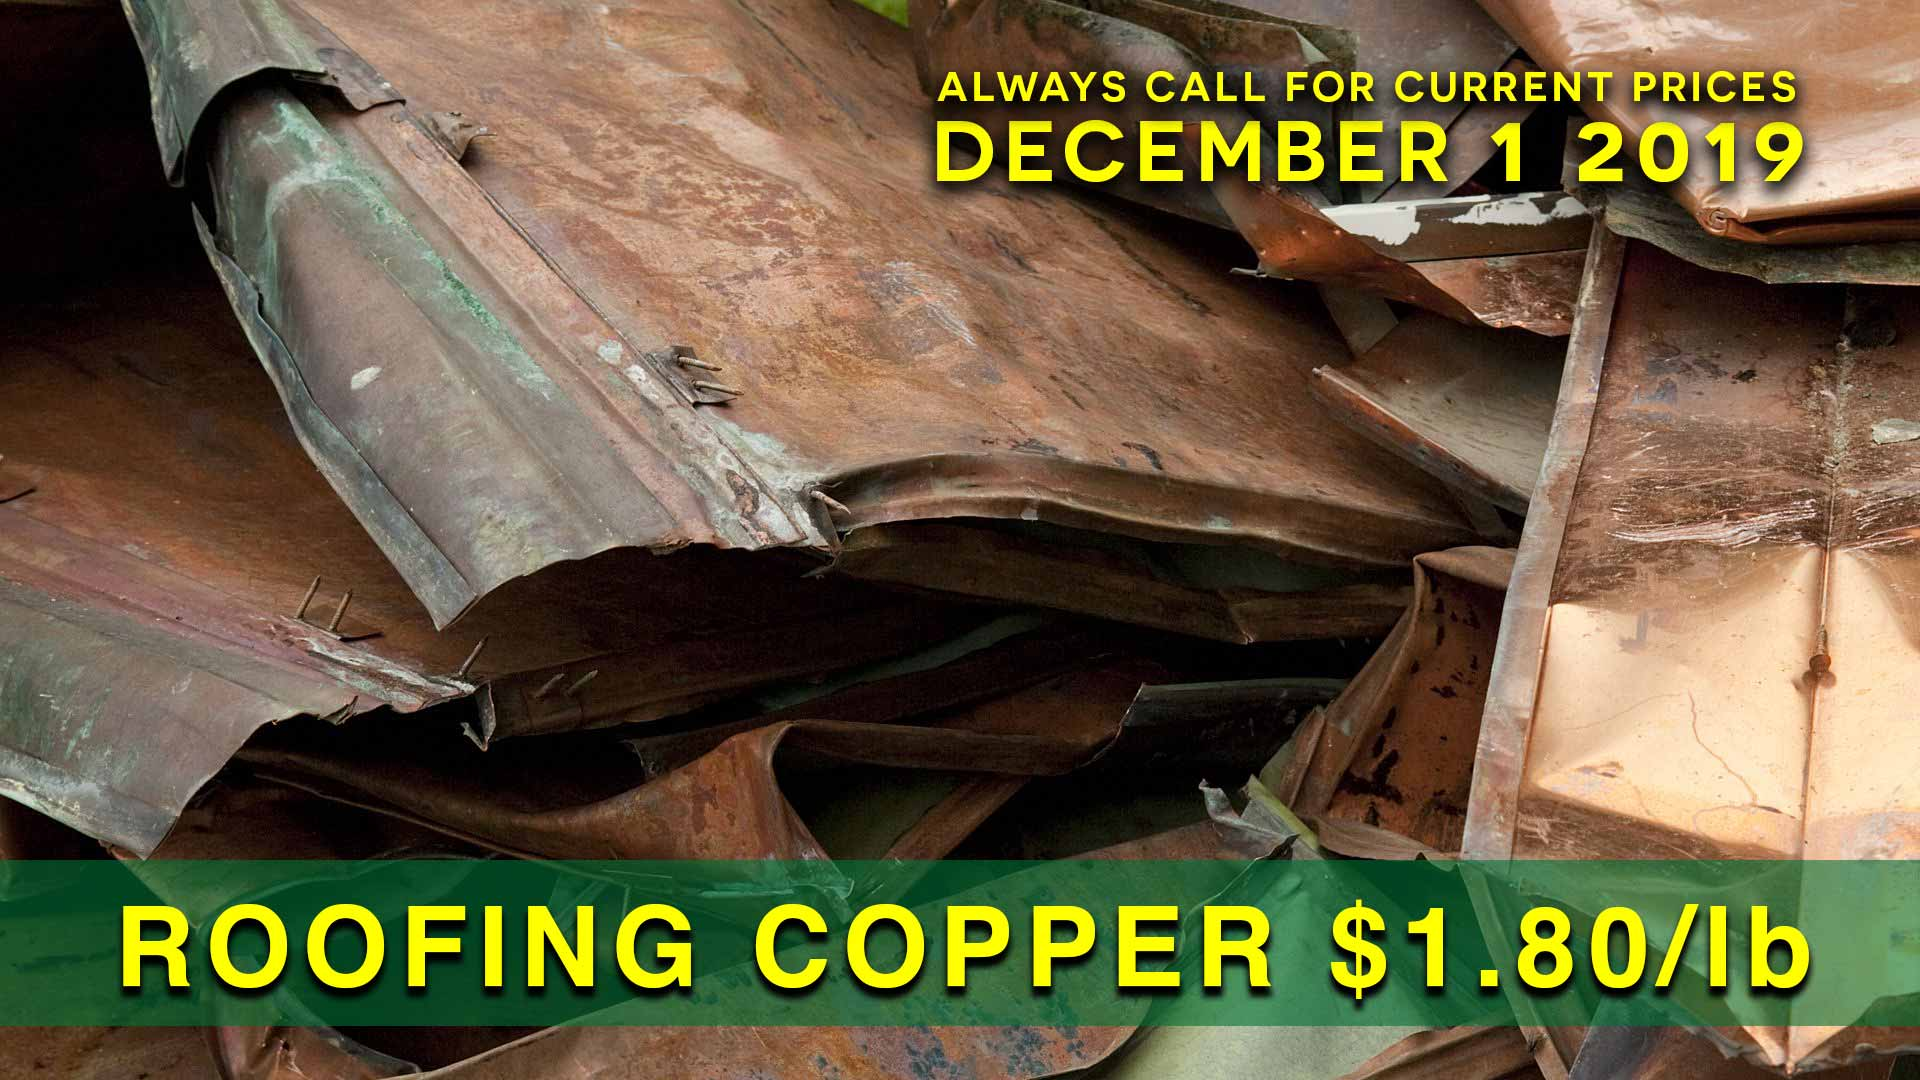 Roofing Copper $1.80 lb.